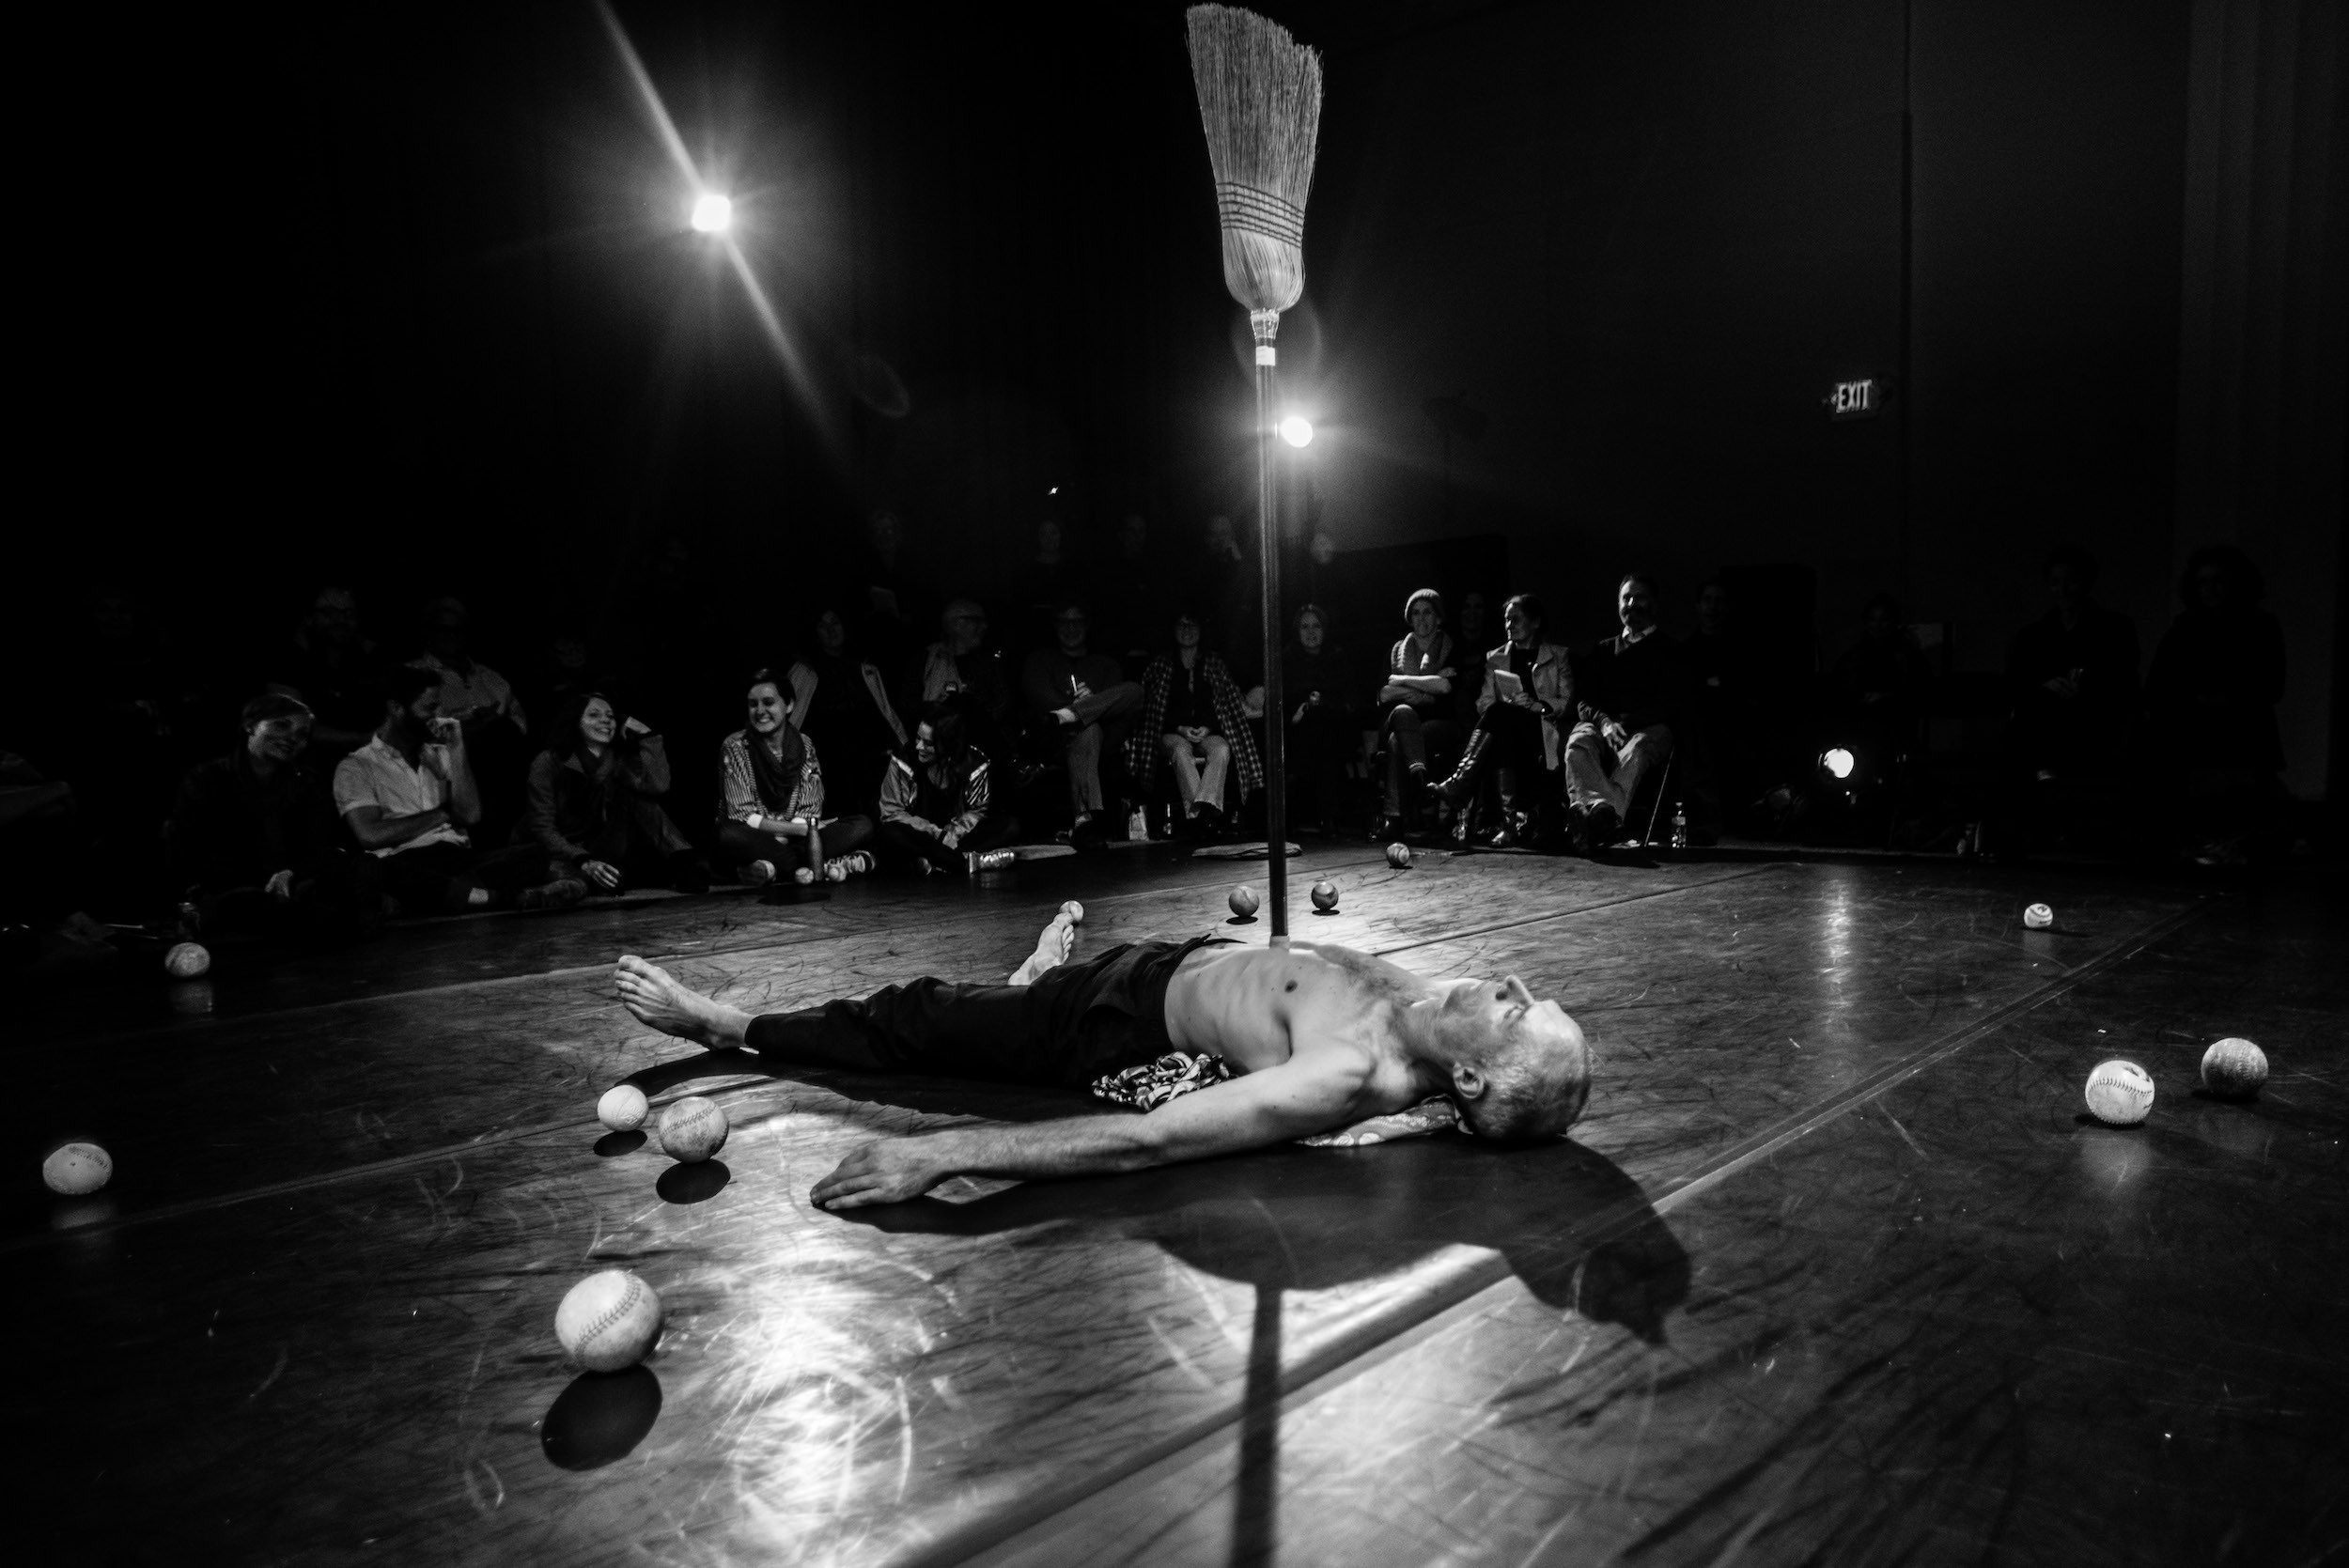 Müller, shirtless, lies on floor balancing broom vertically from his belly. Beyond, a row of audience sit on the floor, smiling. (photo: Robbie Sweeny)